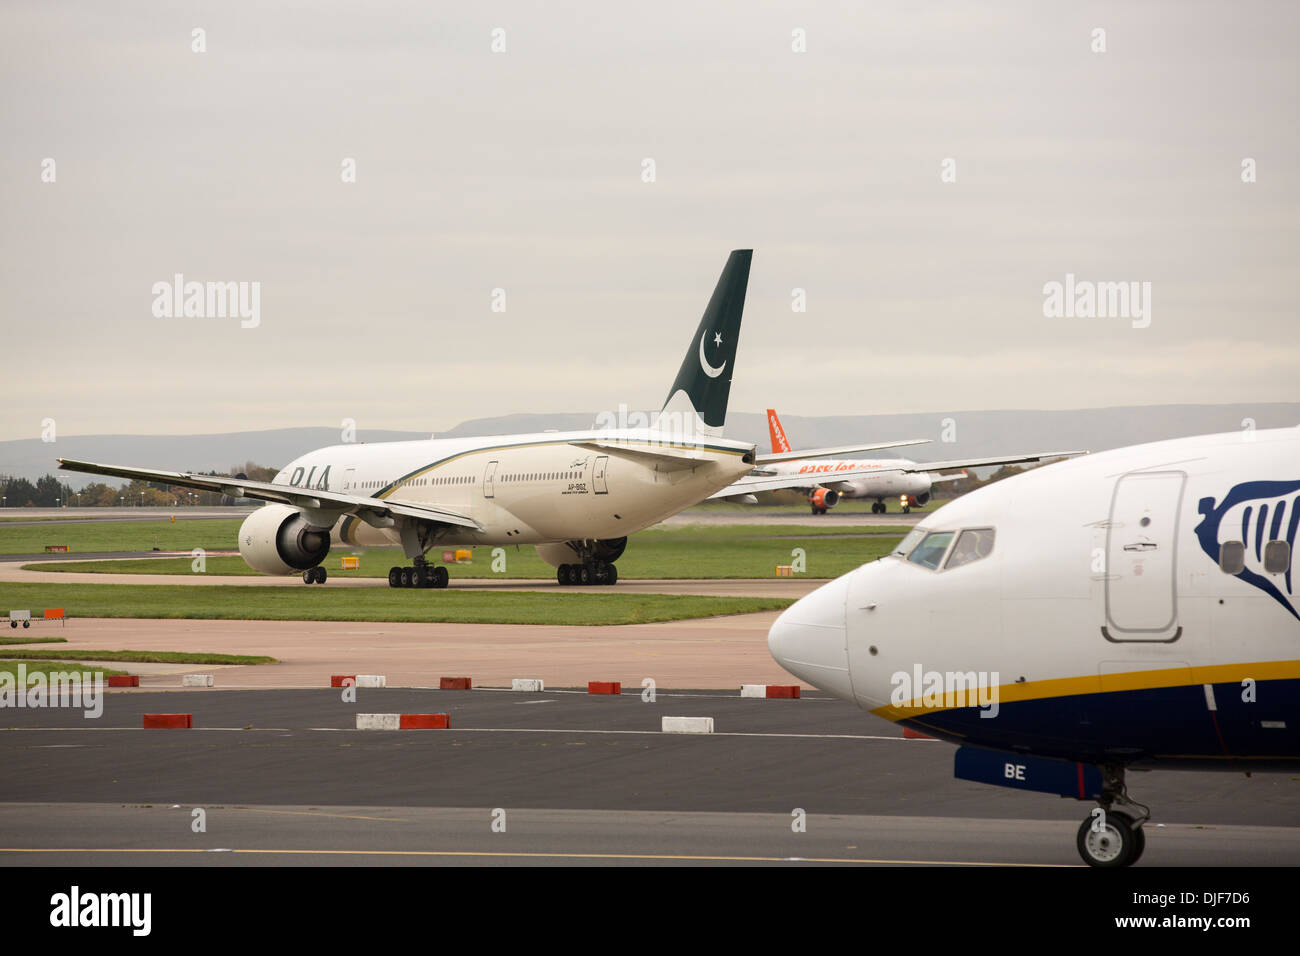 A Pakistan airlienes plane taxiing towards the runway at Manchester Airport, UK. - Stock Image